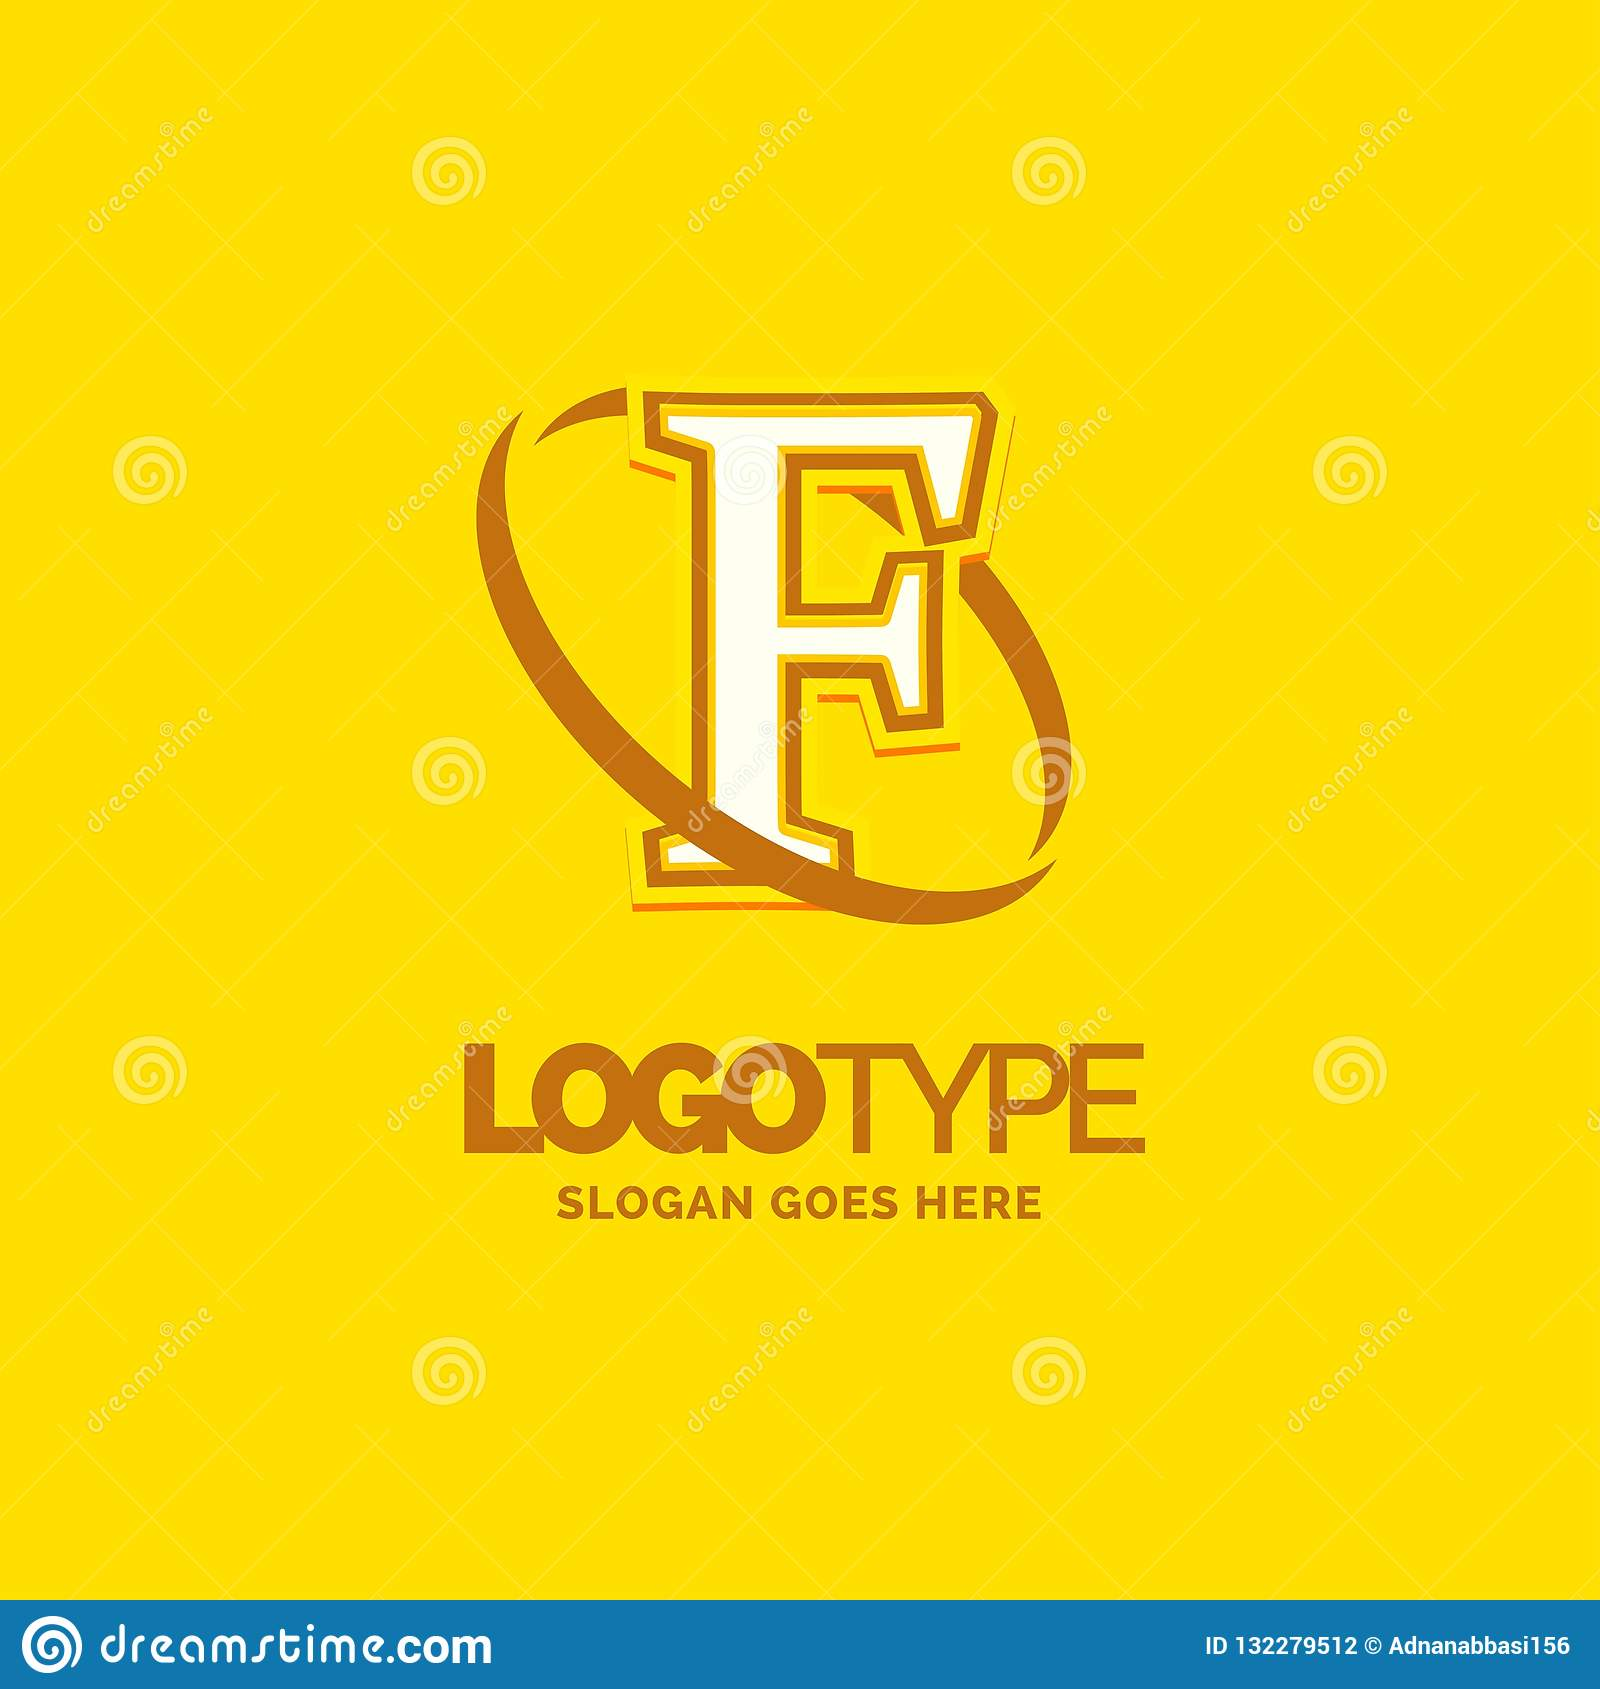 Colorful Company Logo Template With Tagline